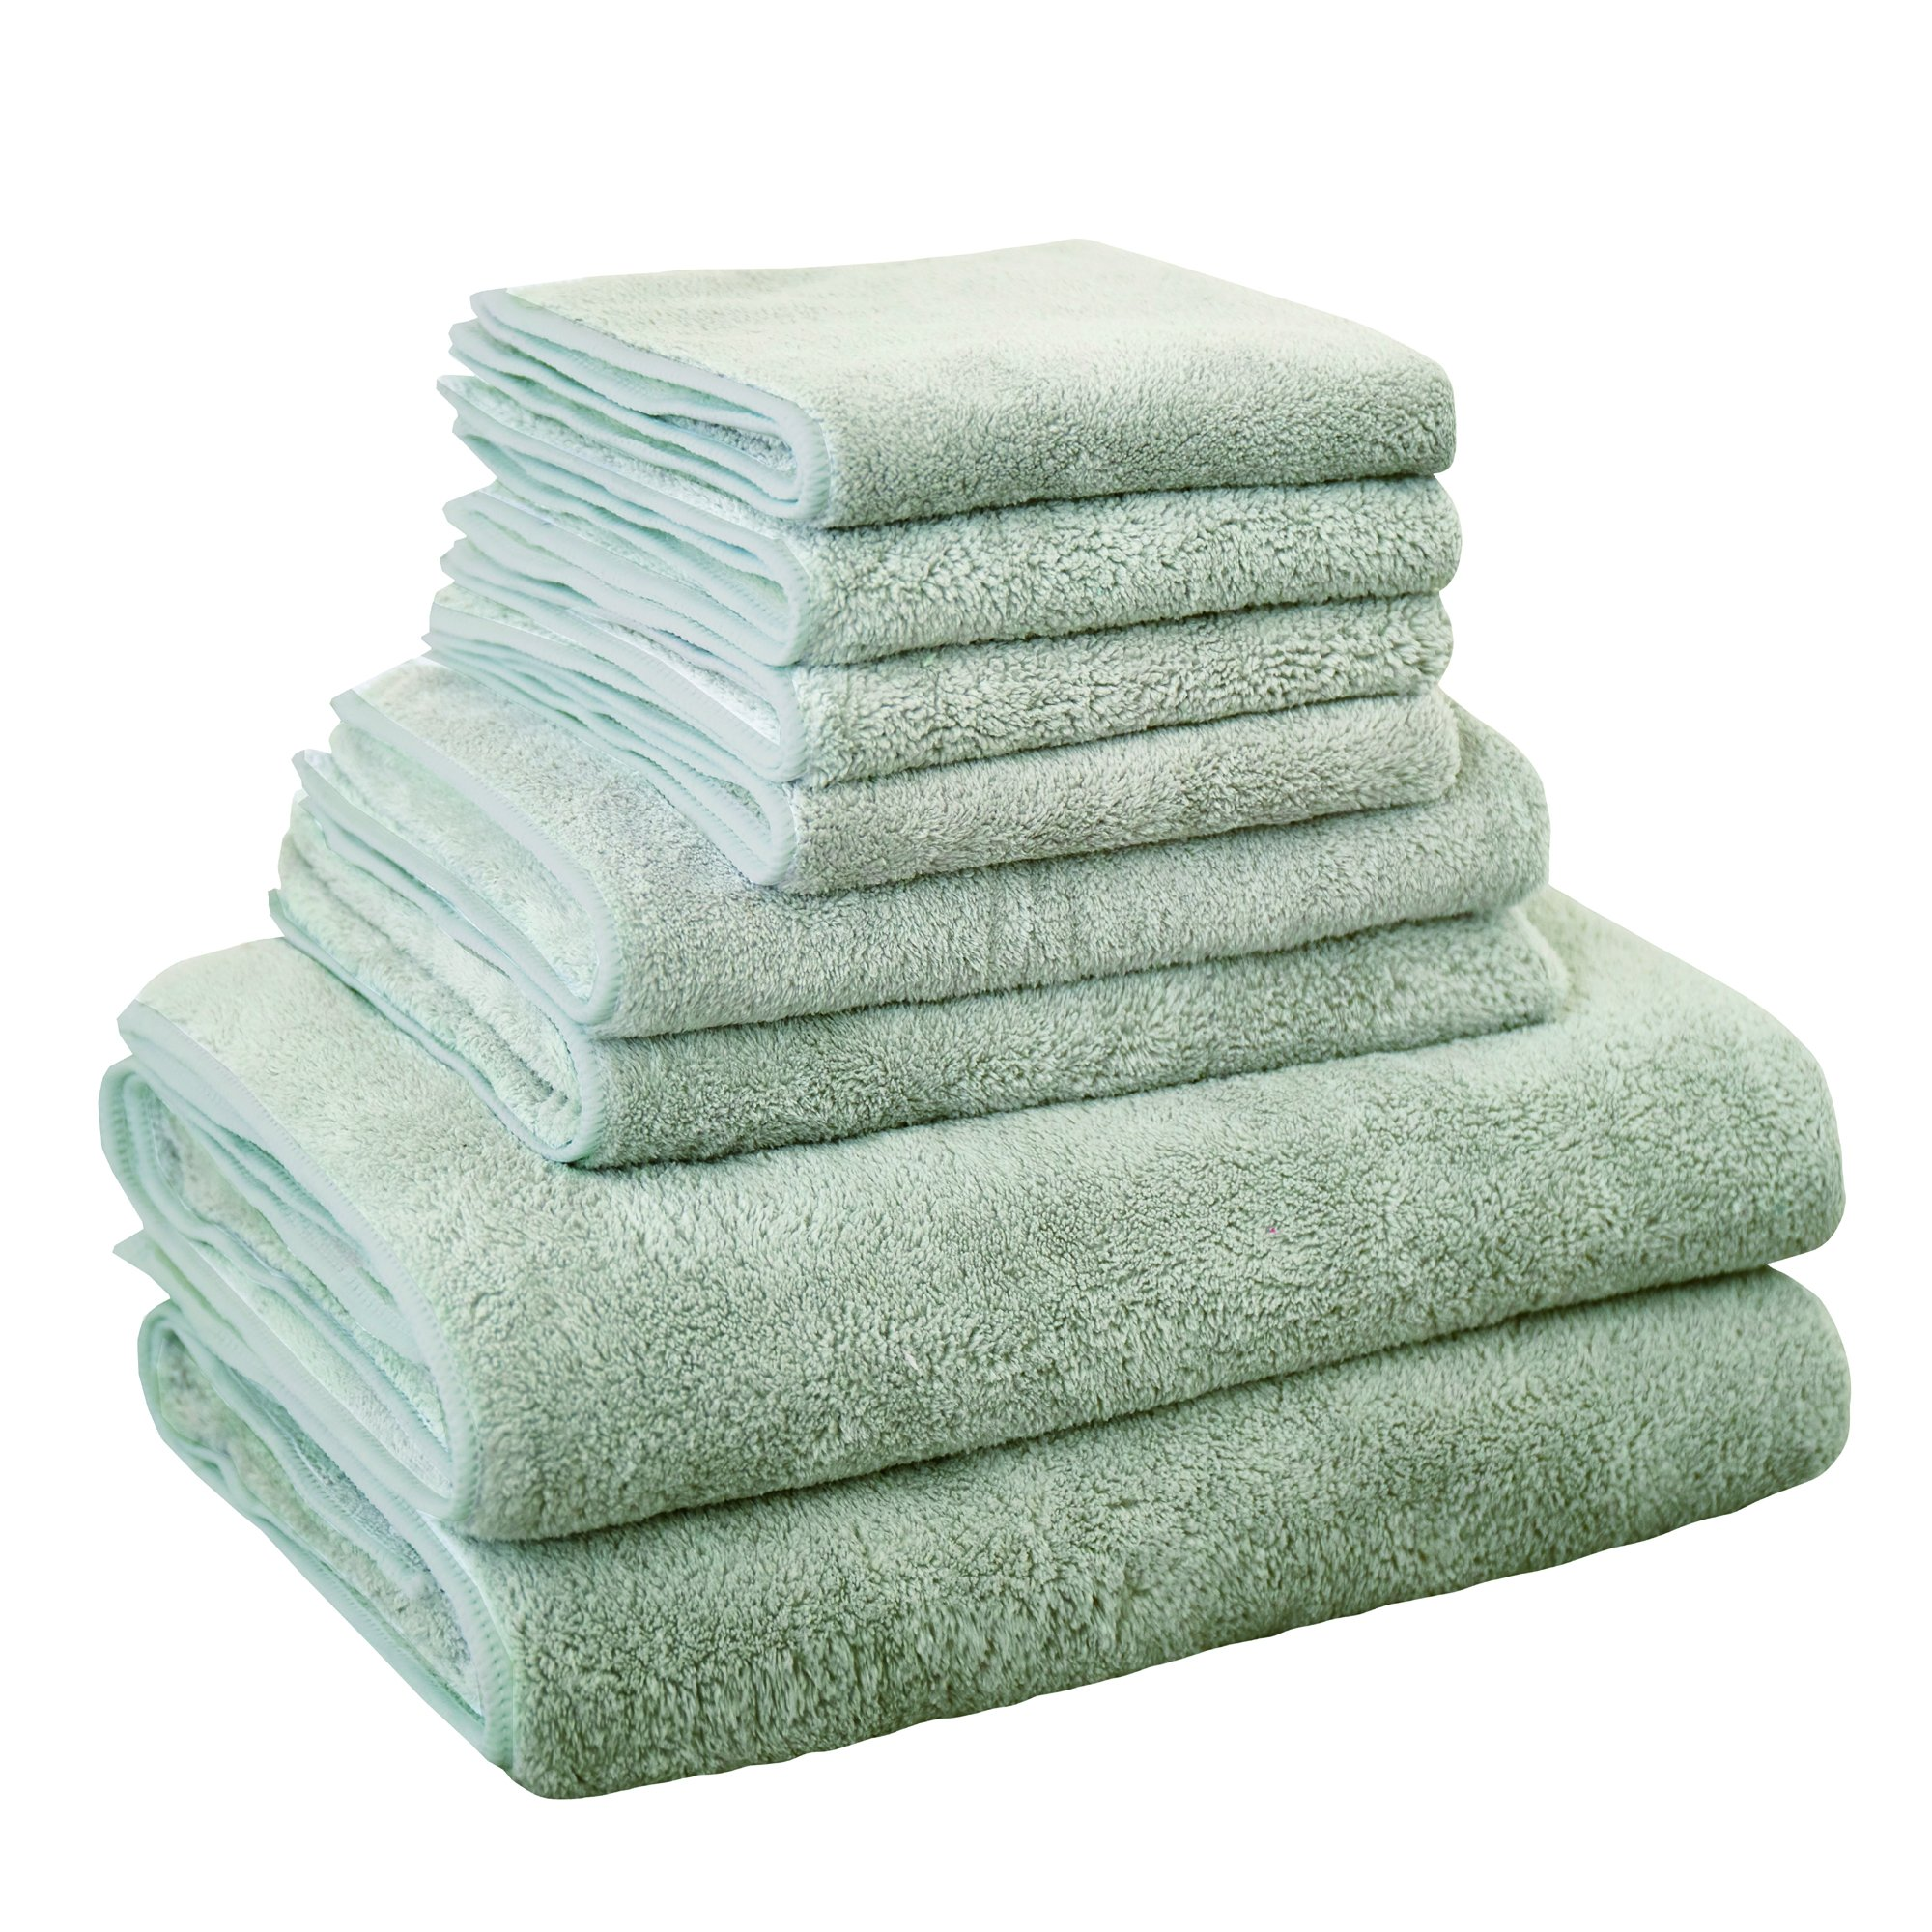 DuShow 8 Piece Towel Set ,2 Bath Towels, 2 Hand Towels and 4 Washcloths - Cotton - Hotel Quality, Eco-Friendly Super Soft and Highly Absorbent (Light Gray)